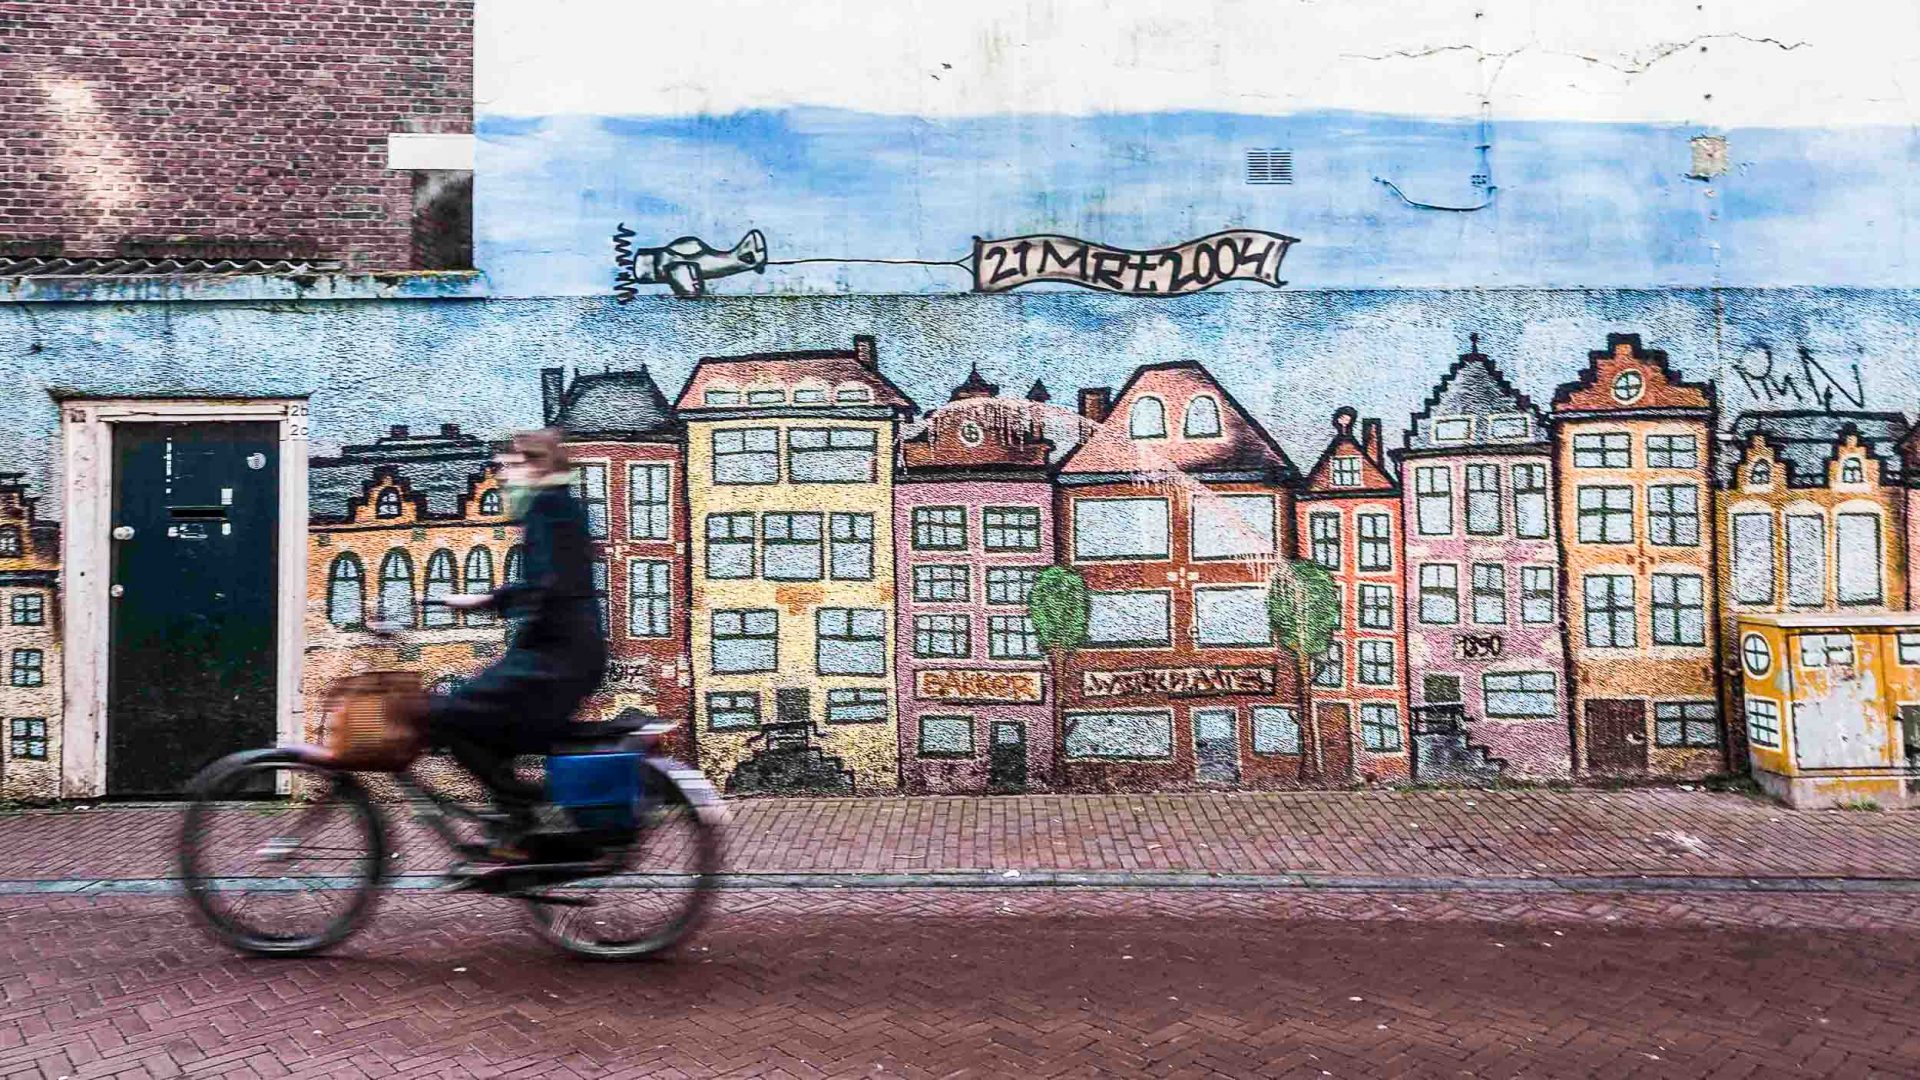 Is it time for Leeuwarden to step out of Amsterdam's shadow?